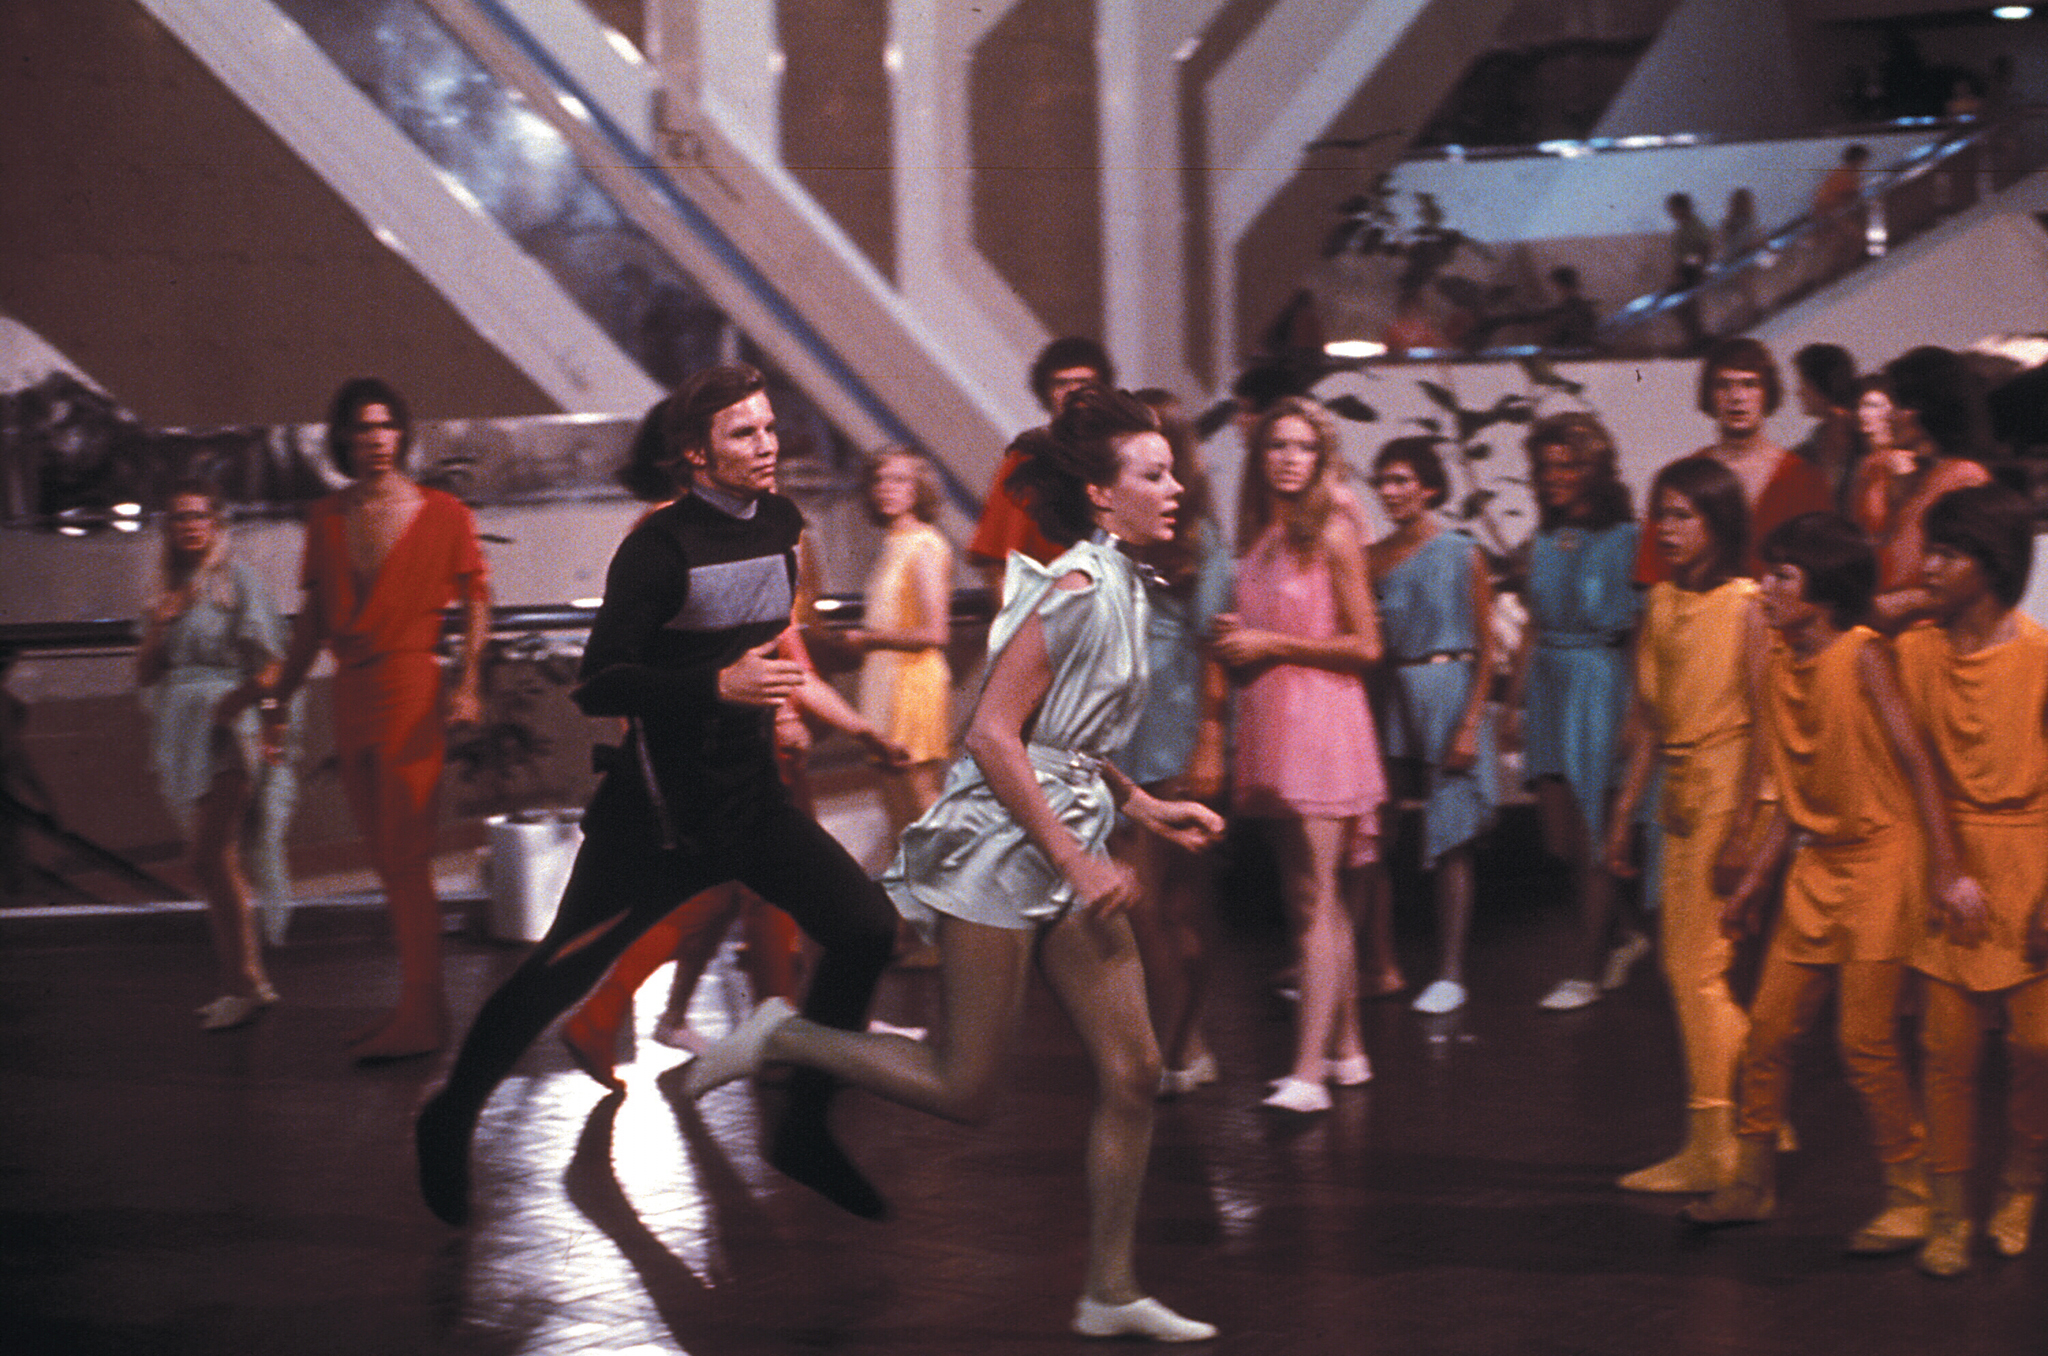 Sci-fi movie: Logan's Run